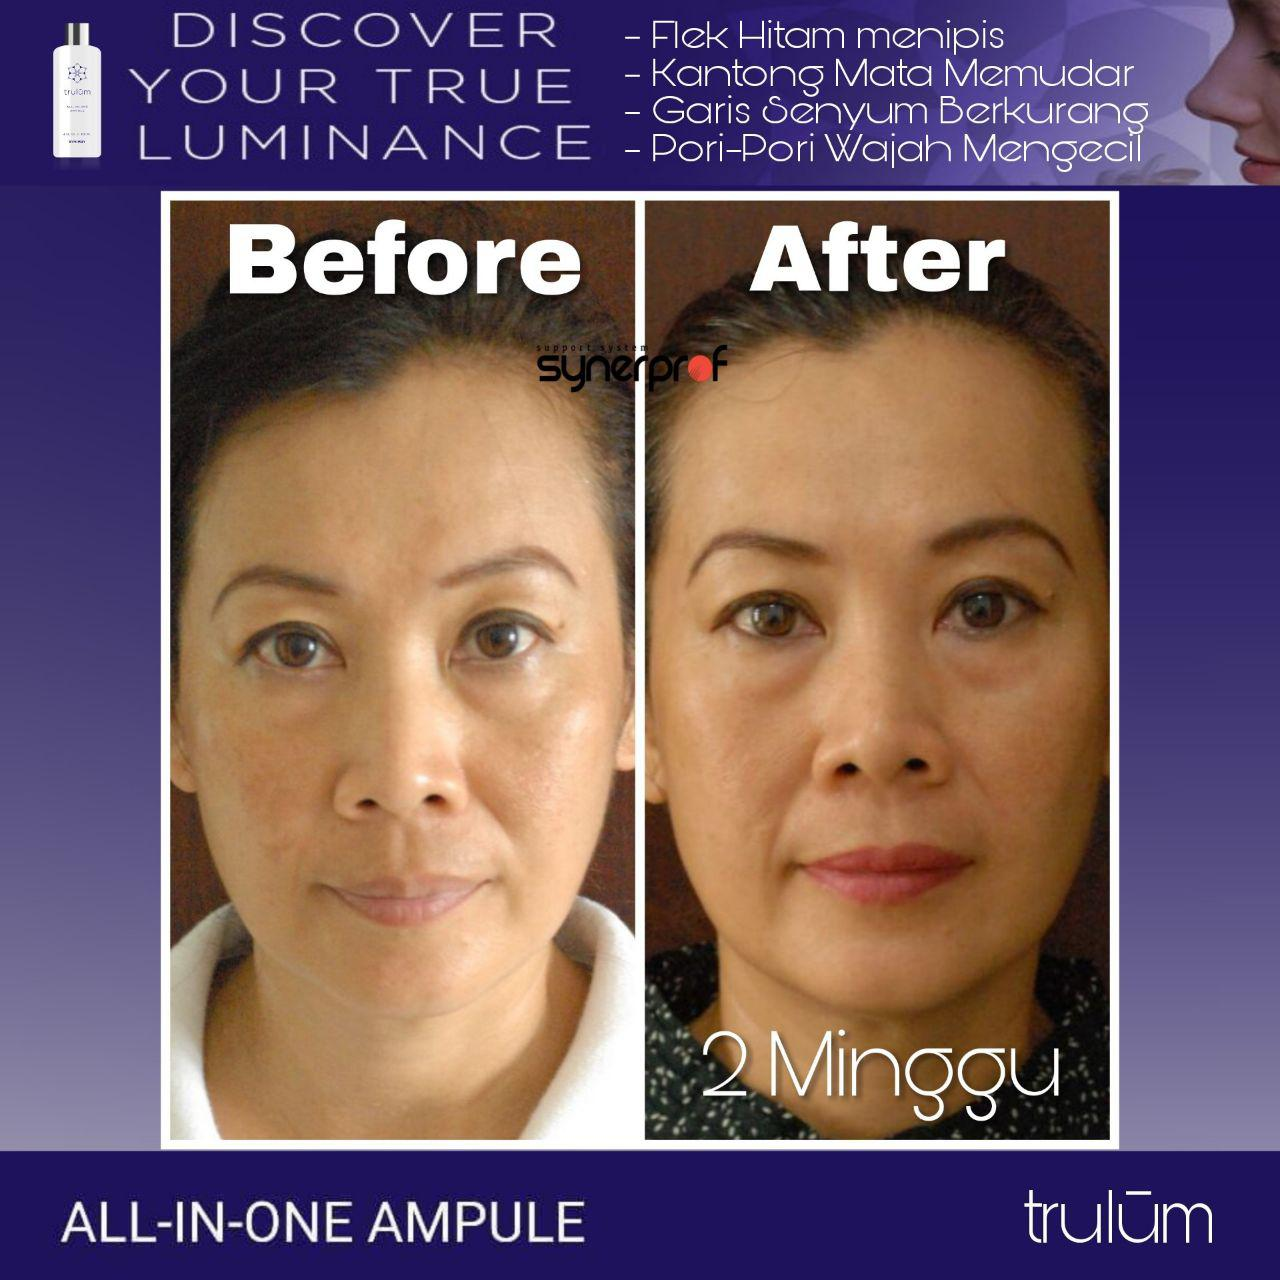 Jual Trulum All In One Ampoule Di Sekadau Hulu WA: 08112338376